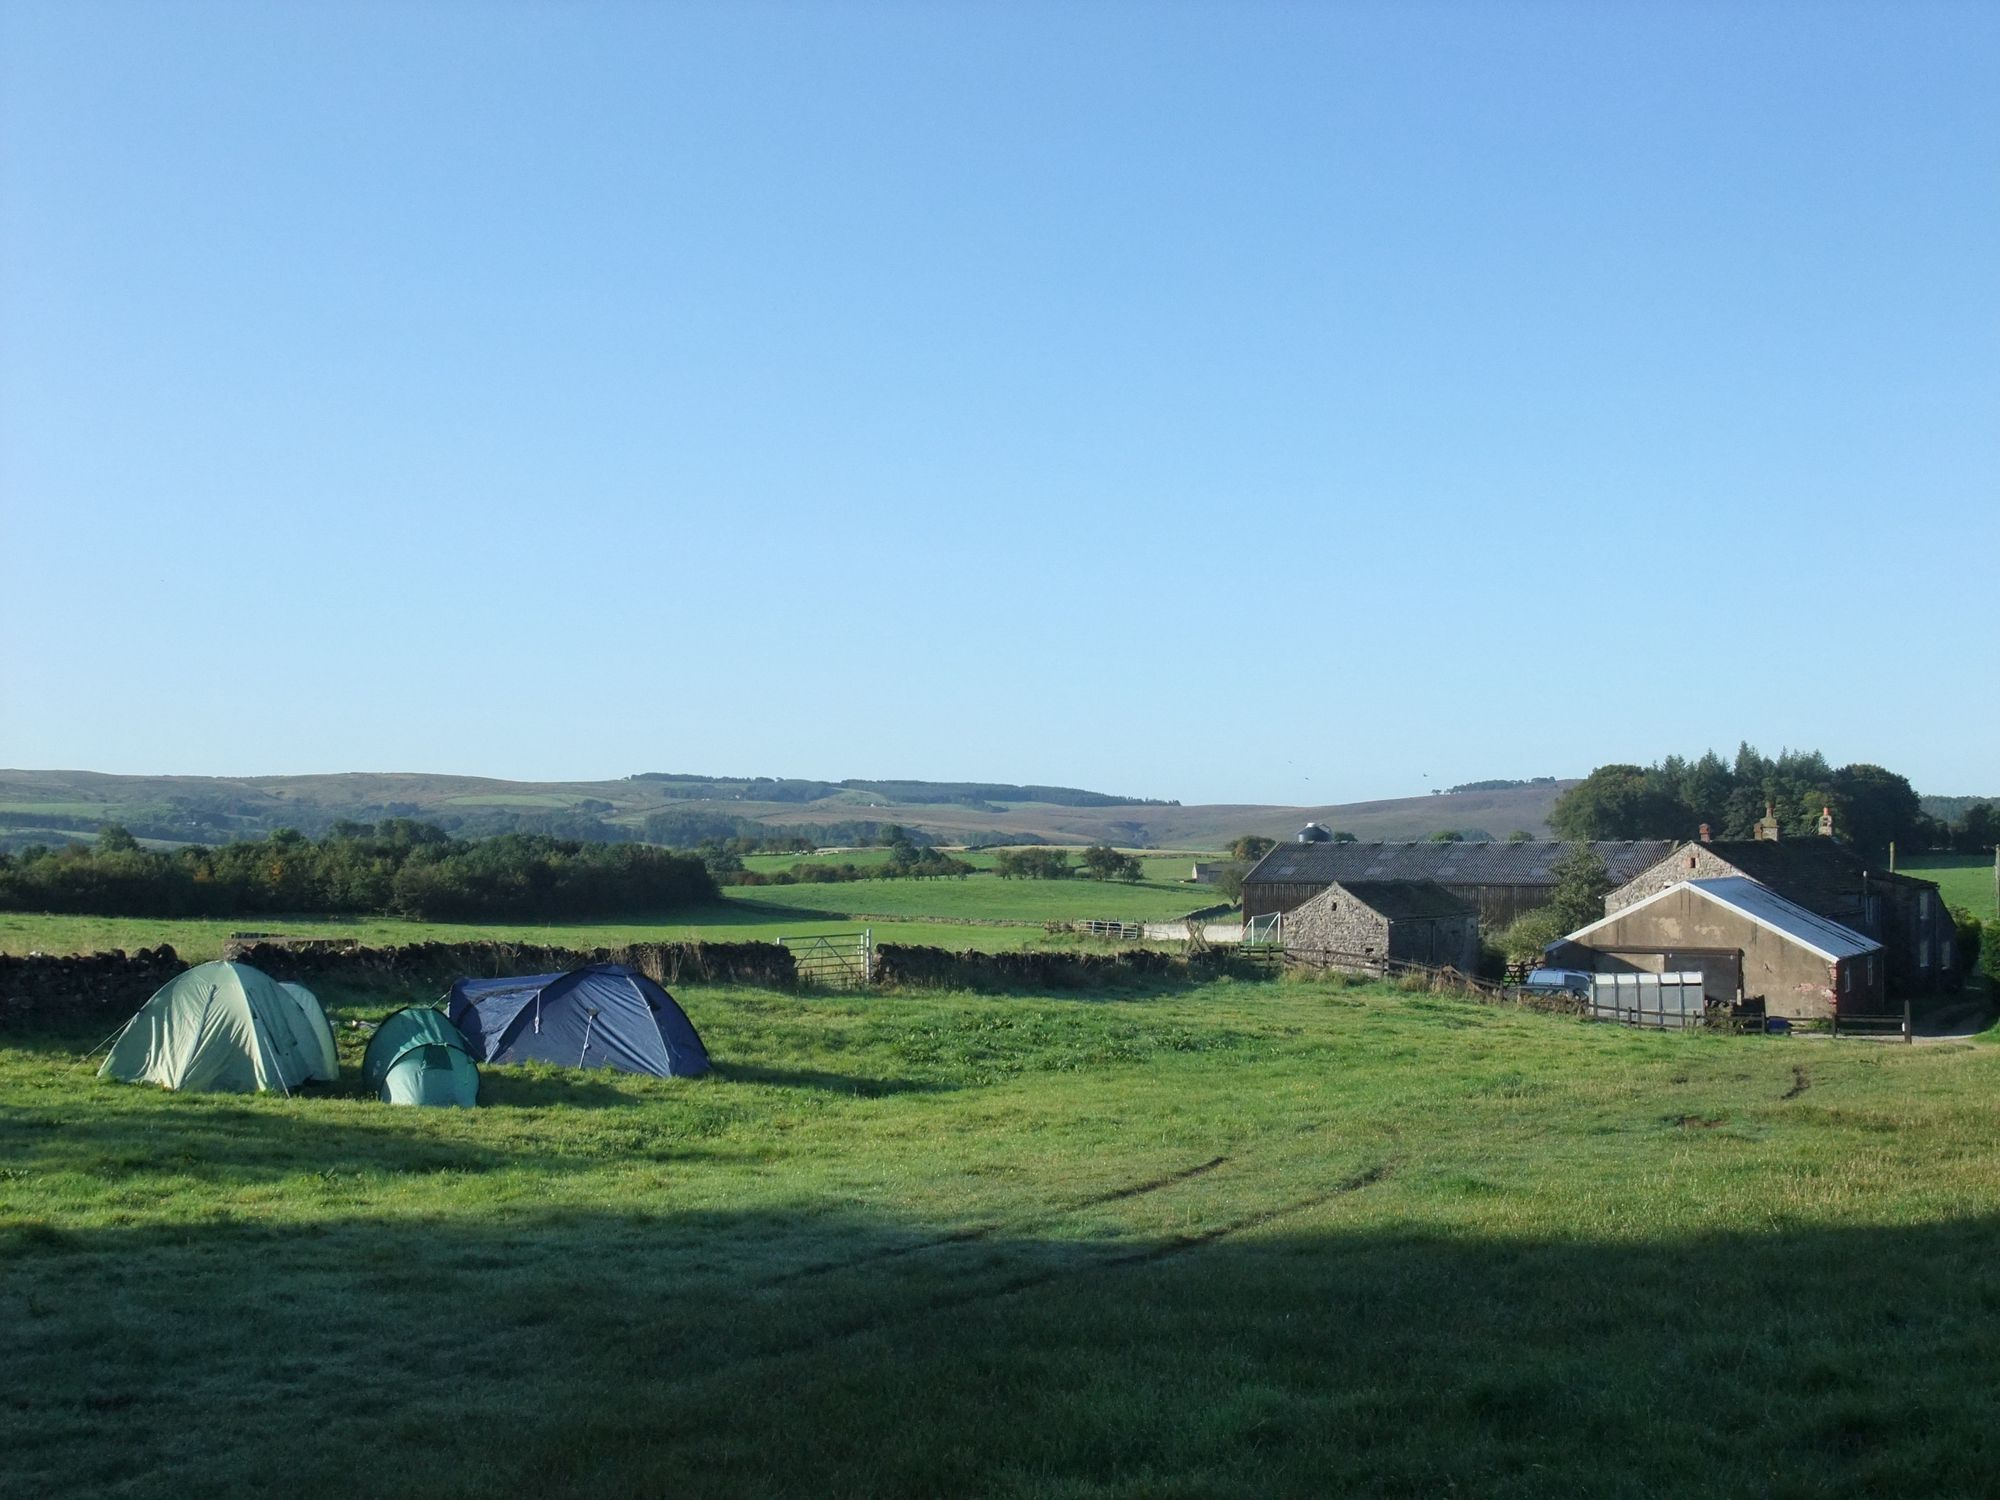 This is the sort of campsite Britons hold in their collective memory: a simple open field bounded by a drystone wall, with a loo in a lean-to by the farmhouse, and drinking water sourced from a tap coming out of a wall.